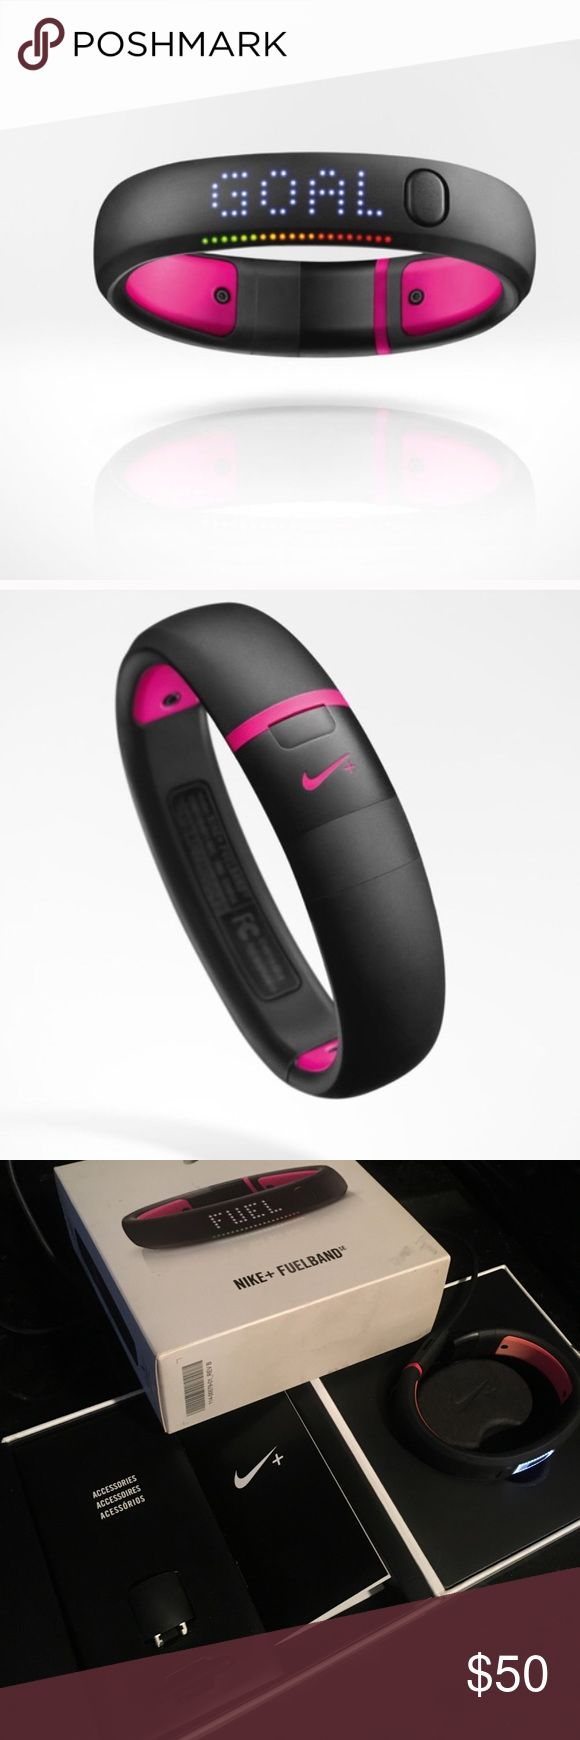 💥 Nike+FUELBAND- Magenta! 💥 Used Pink Nike Fuel Band. Some wear, but in great condition. Works with IPhone or Android. Counts your calories, steps, and helps you stay in shape! Nike Accessories